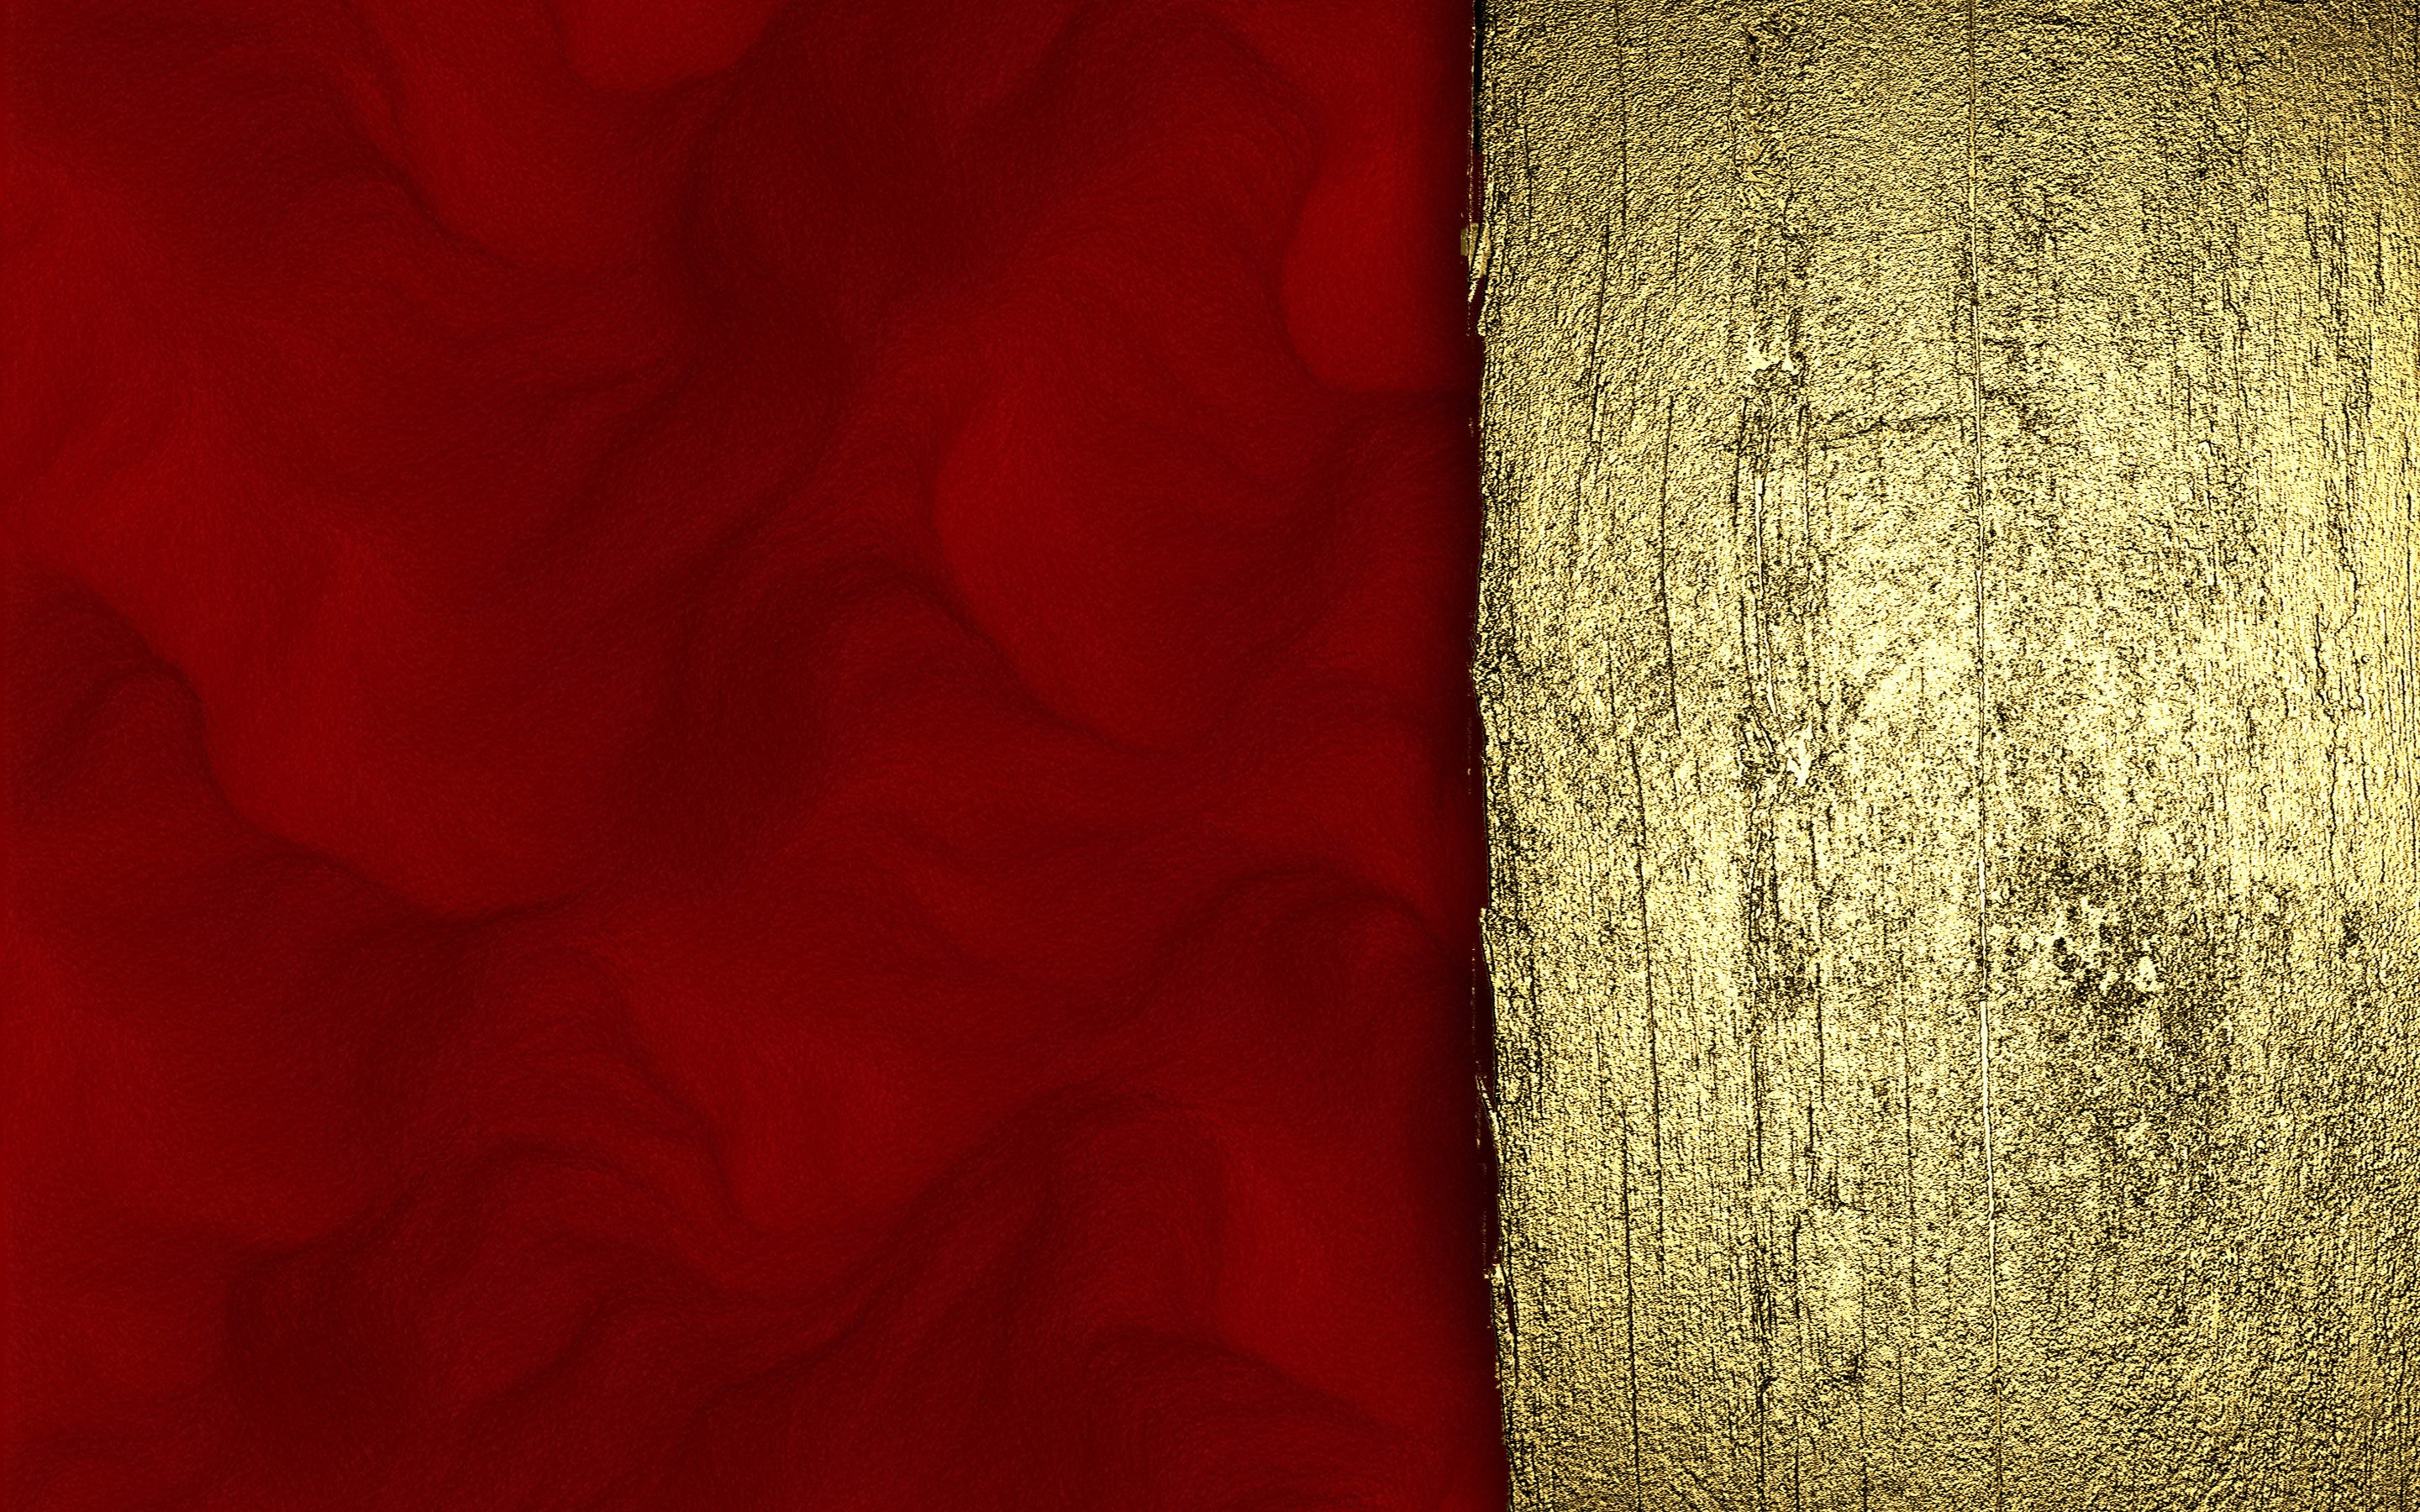 Red and Gold background  Download free awesome